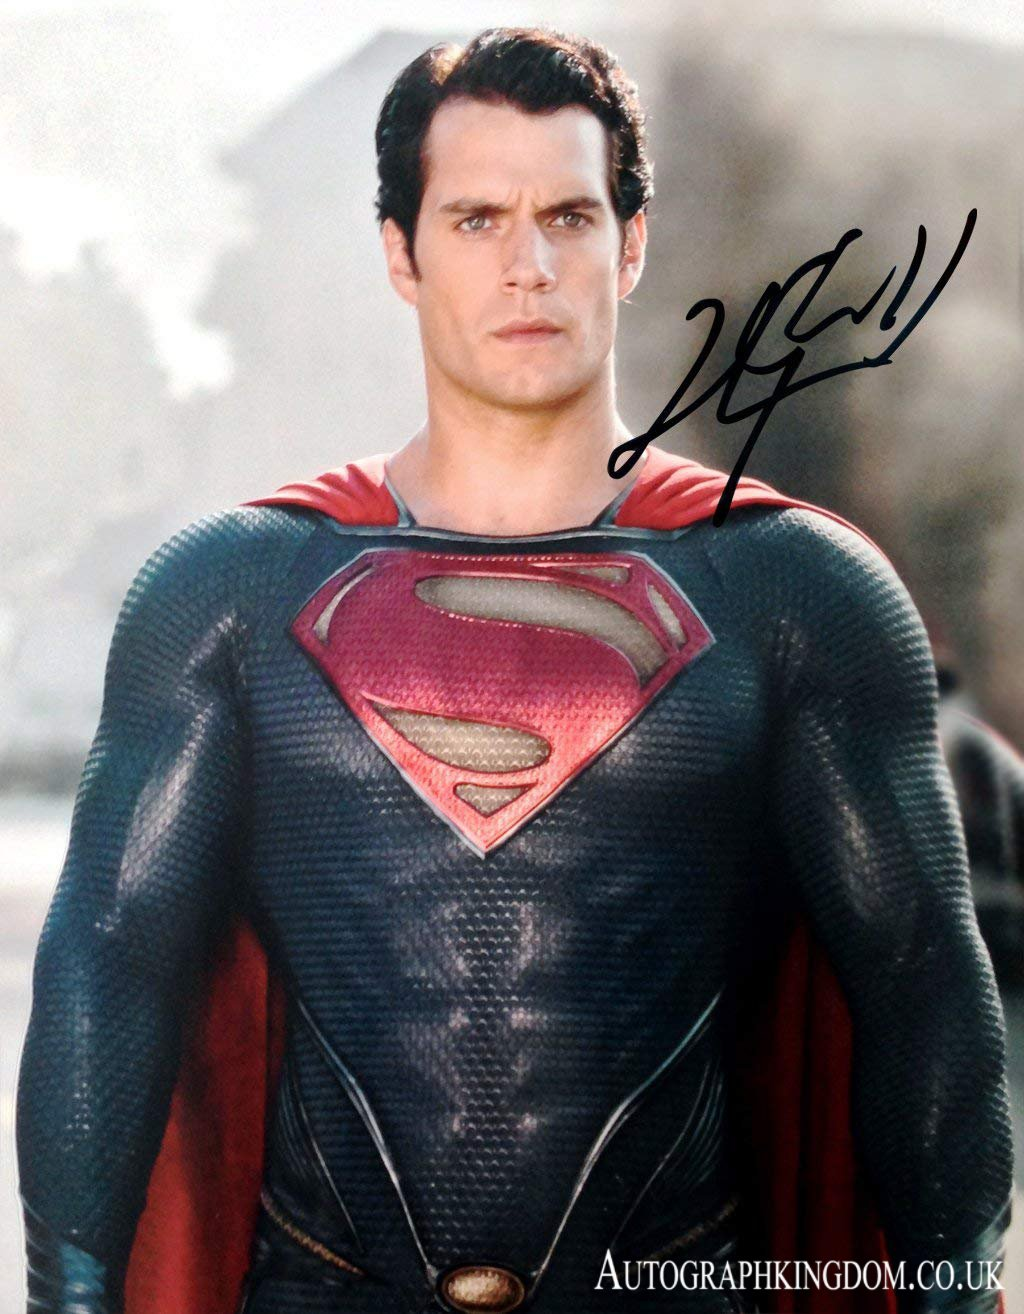 """Henry Cavill Superman Man of Steel / The Witcher  x 10"""" Autographed Photo (Reprint 2146)"""